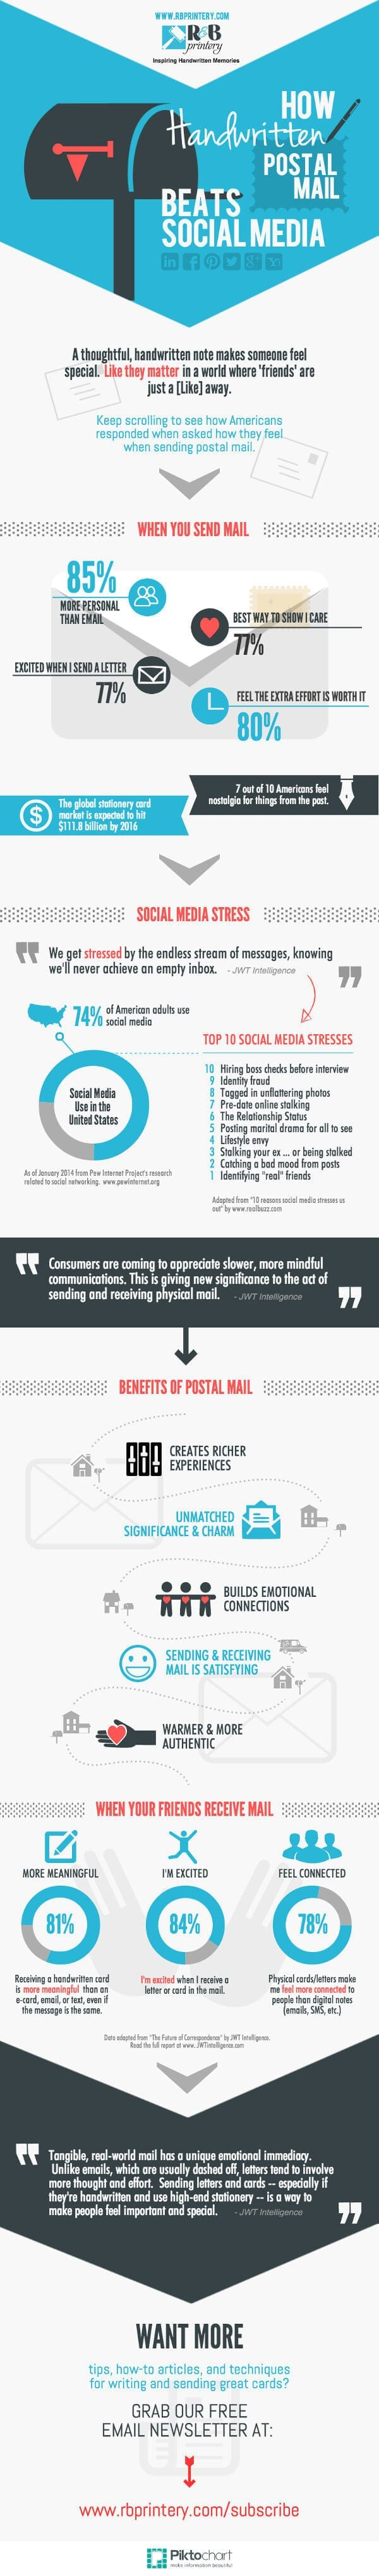 blog_postal-mail-beats-social-media-infographic